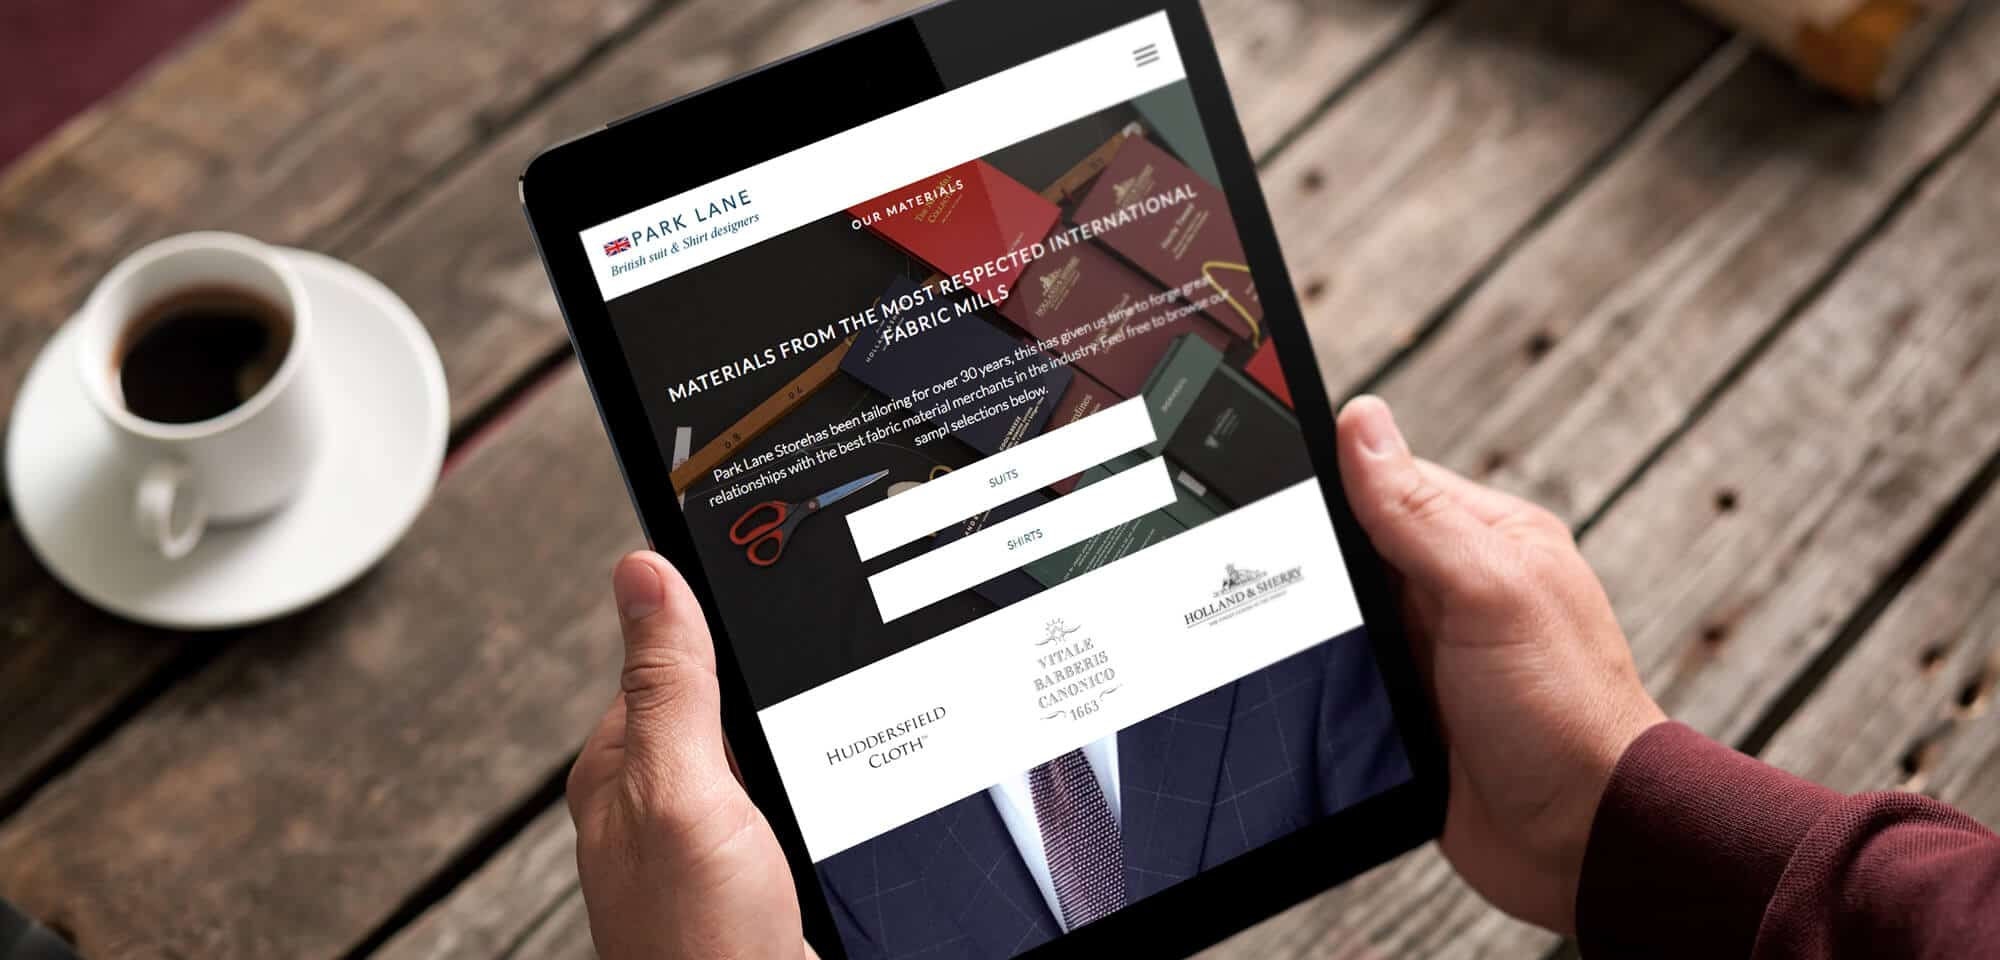 website-design-tailors-park-lane-store-ipad-view